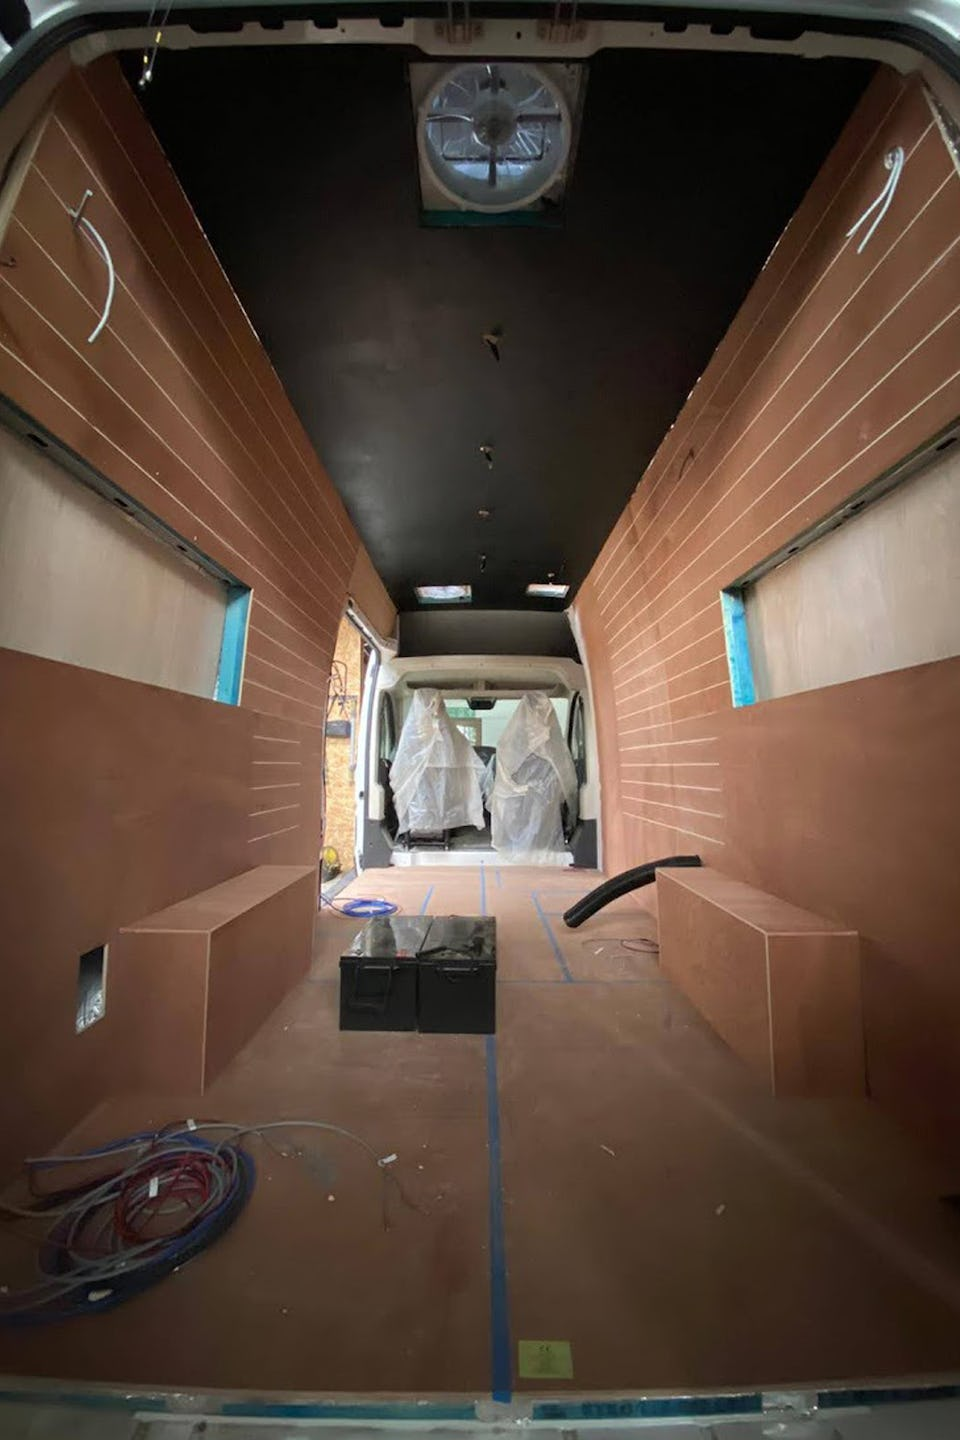 Vanlife Conversions - The Road Two Spoons